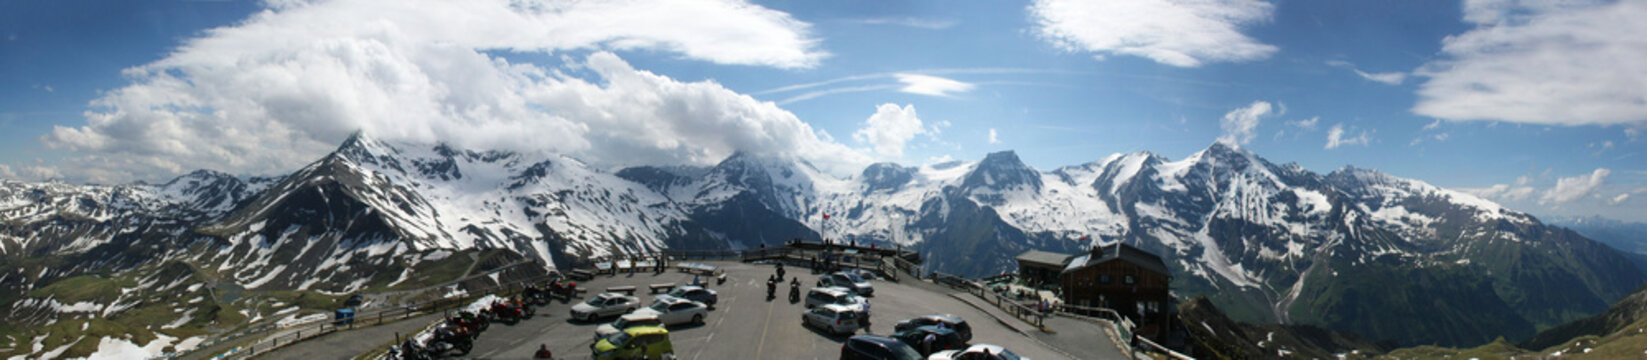 """Großglockner, view from the """"Edelweißspitze"""" onto the parking lot and the Alps, panorama in spring"""